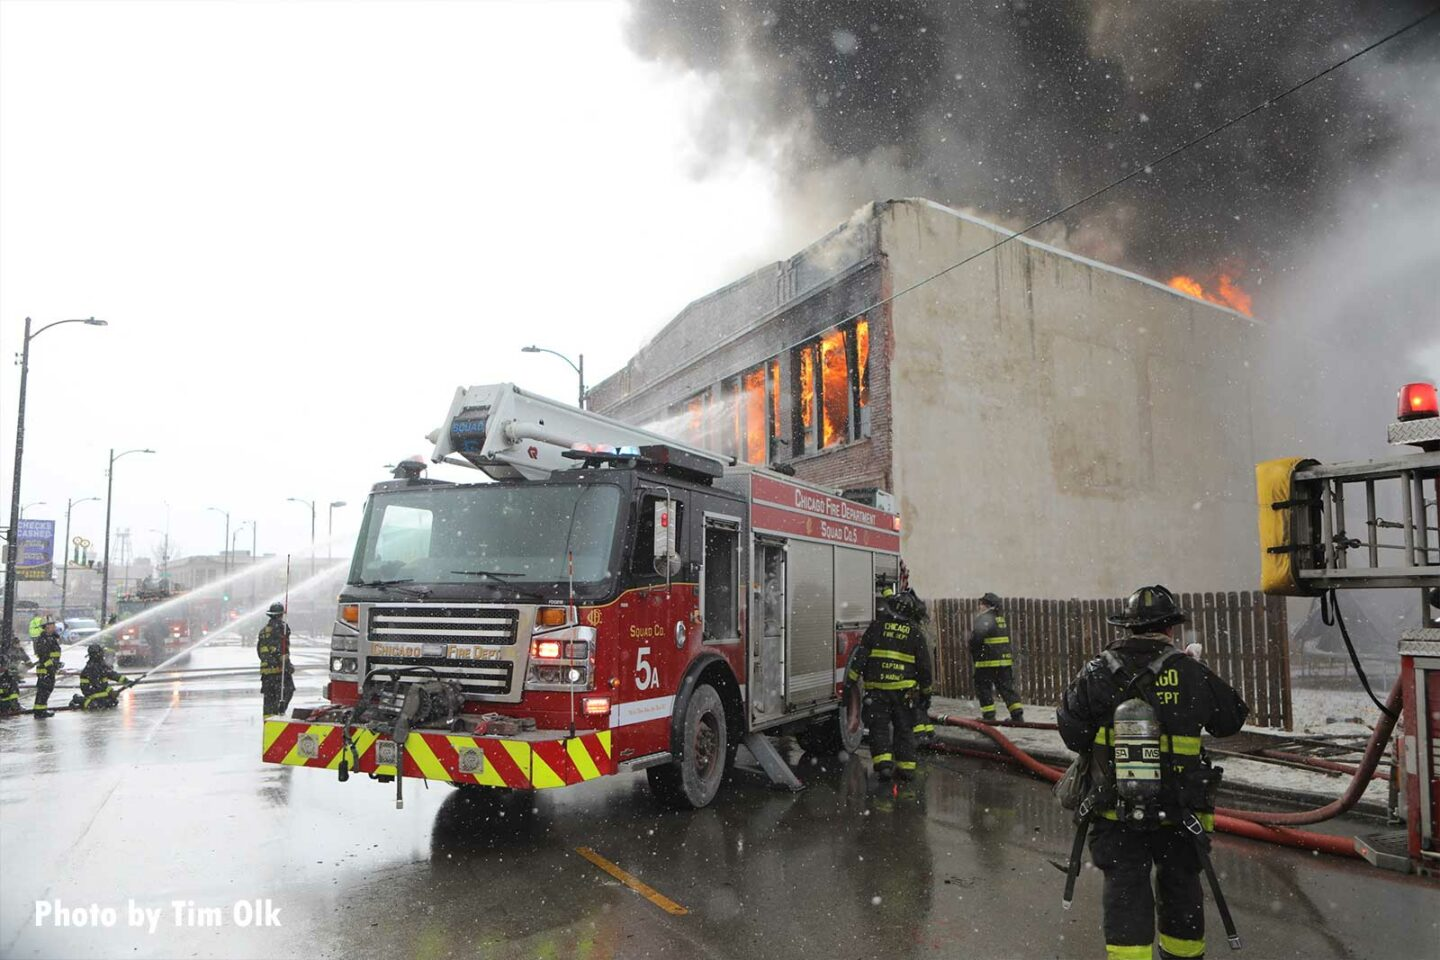 Chicago firefighters and fire truck with burning building